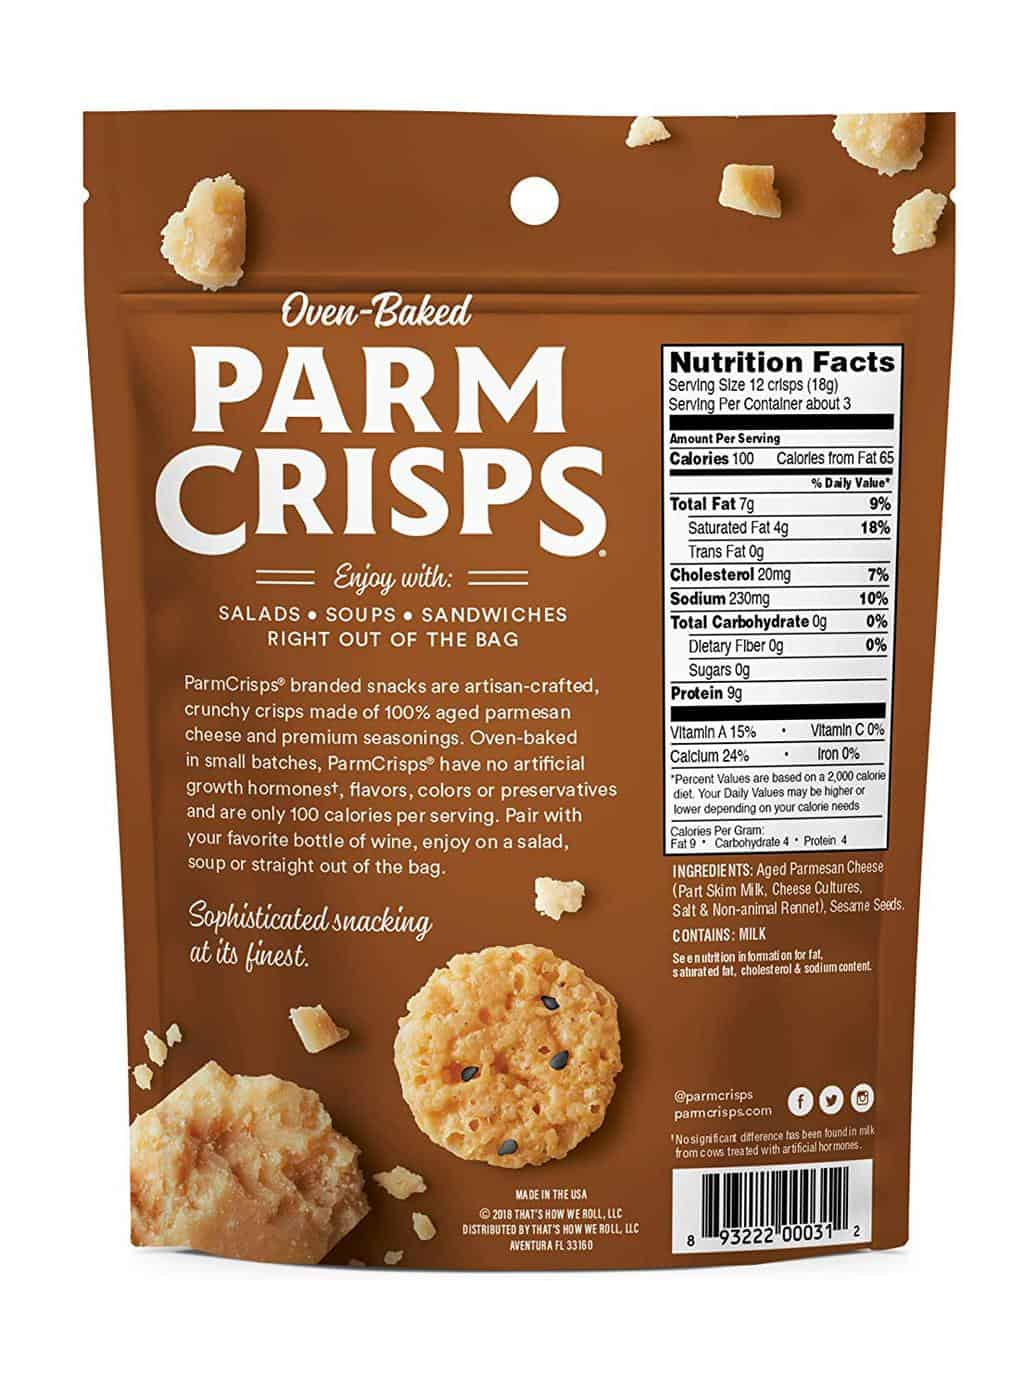 Simple Ingredients In ParmCrisp Cheese Crisps